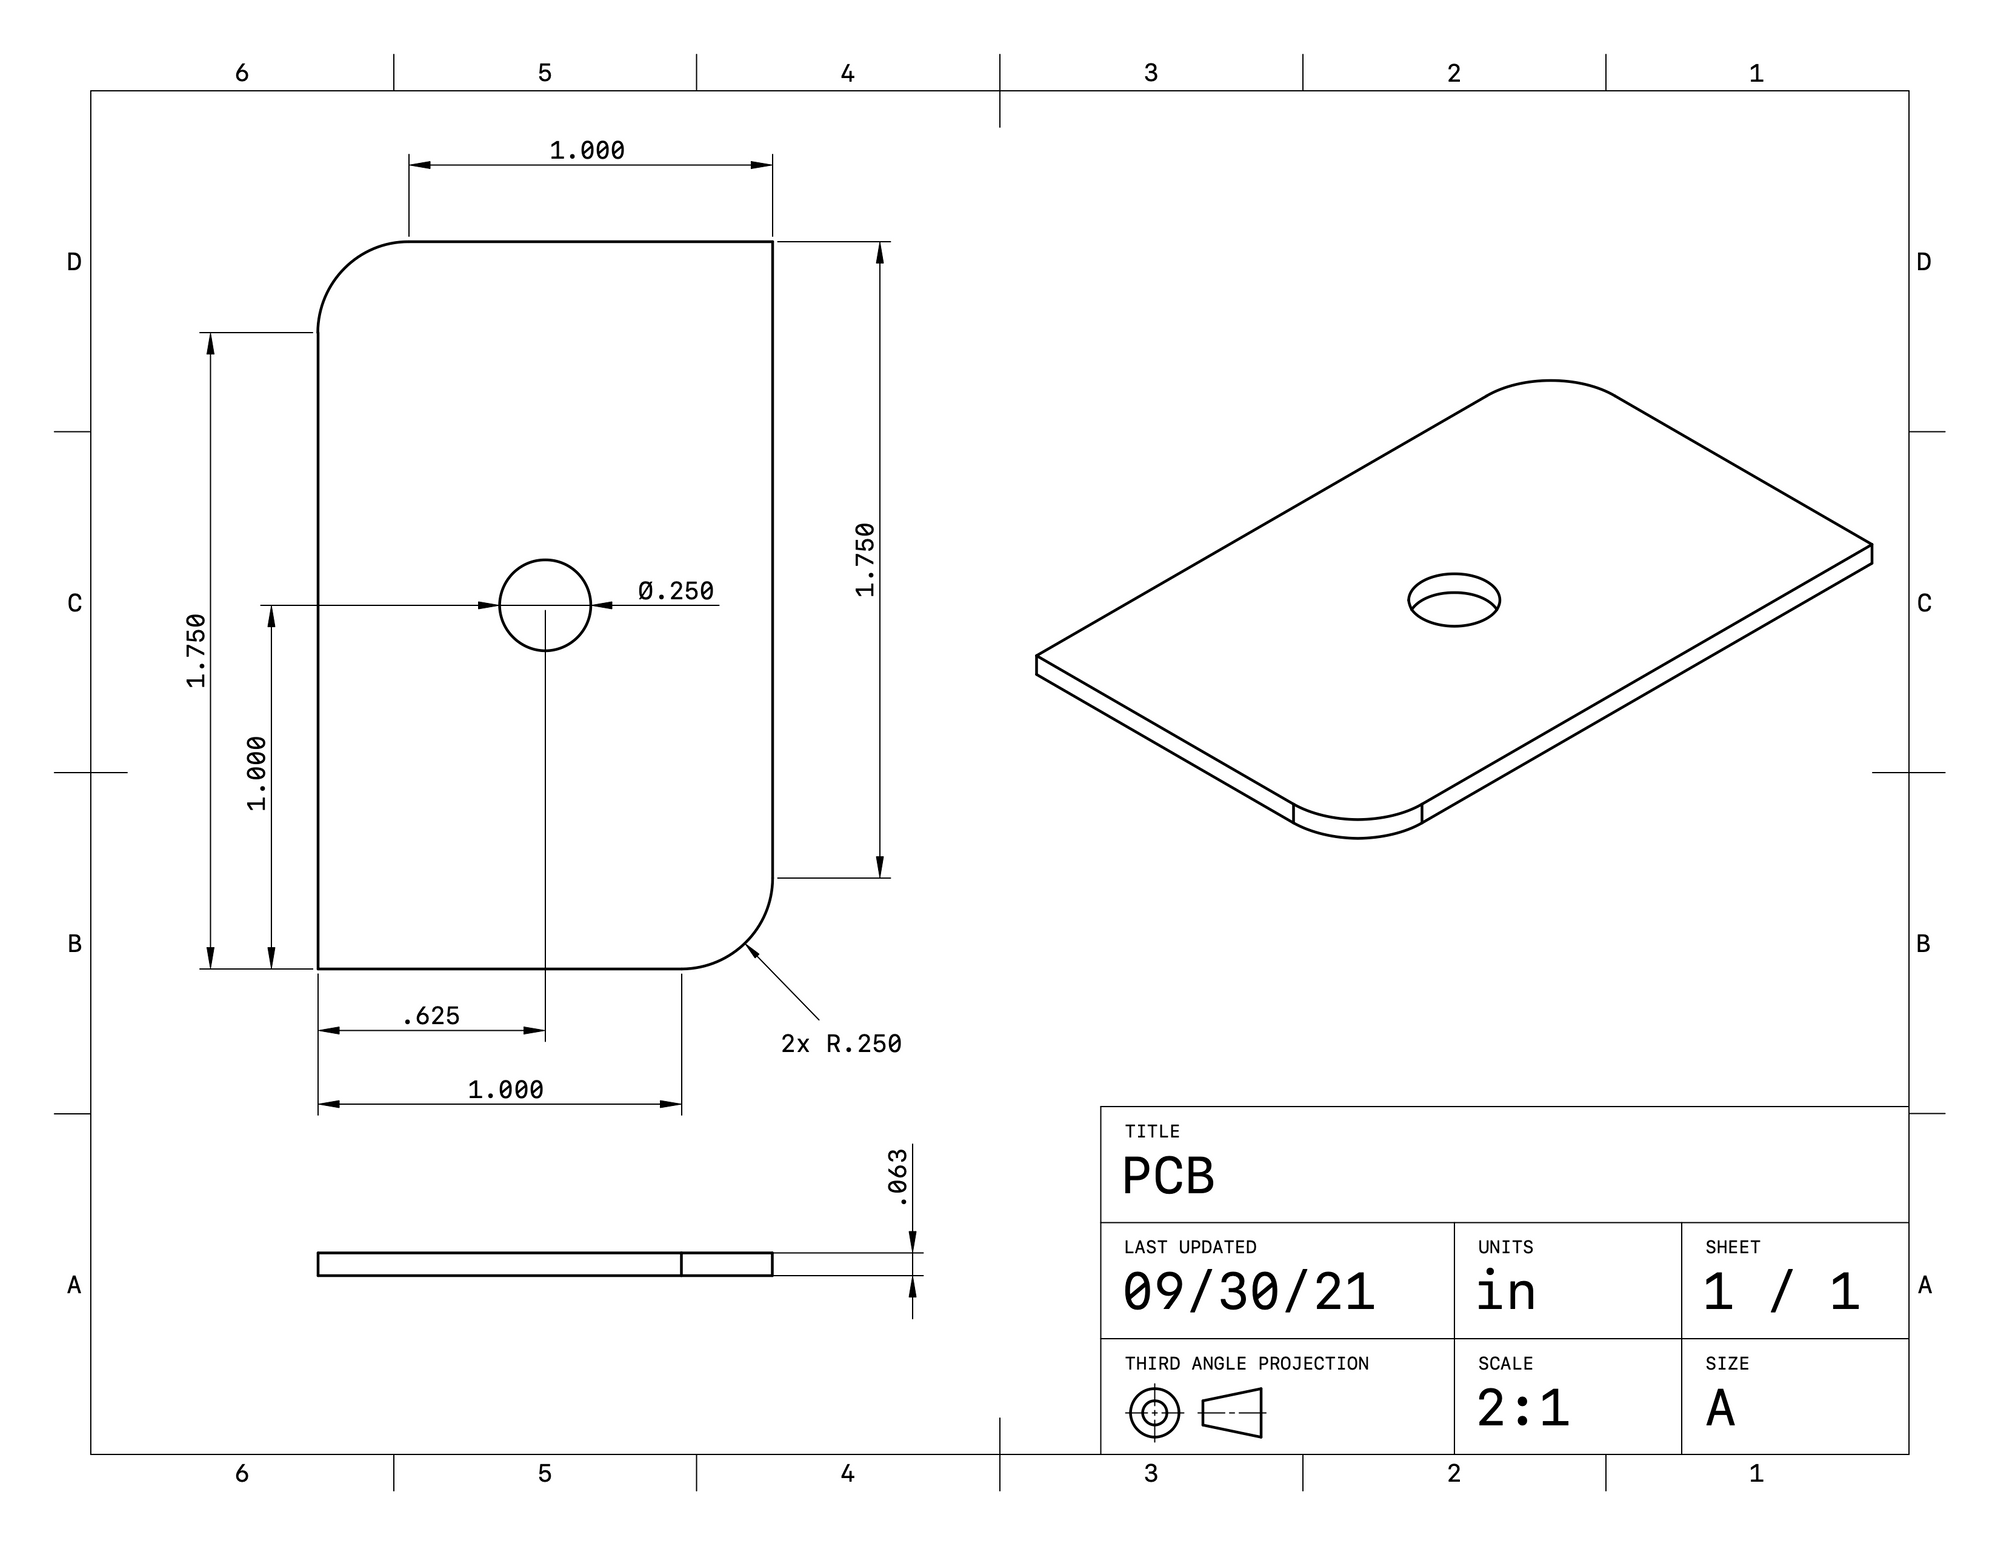 Dimensions of the PCB. The PCB should be a rectangle 1.25 inches by 2.00 inches, with a 0.25 radius fillet on the lower right and lower left corners. Additionally, there is a 0.25 inch diameter hole at the middle of the board. The entire board should by 0.063 inches thick.